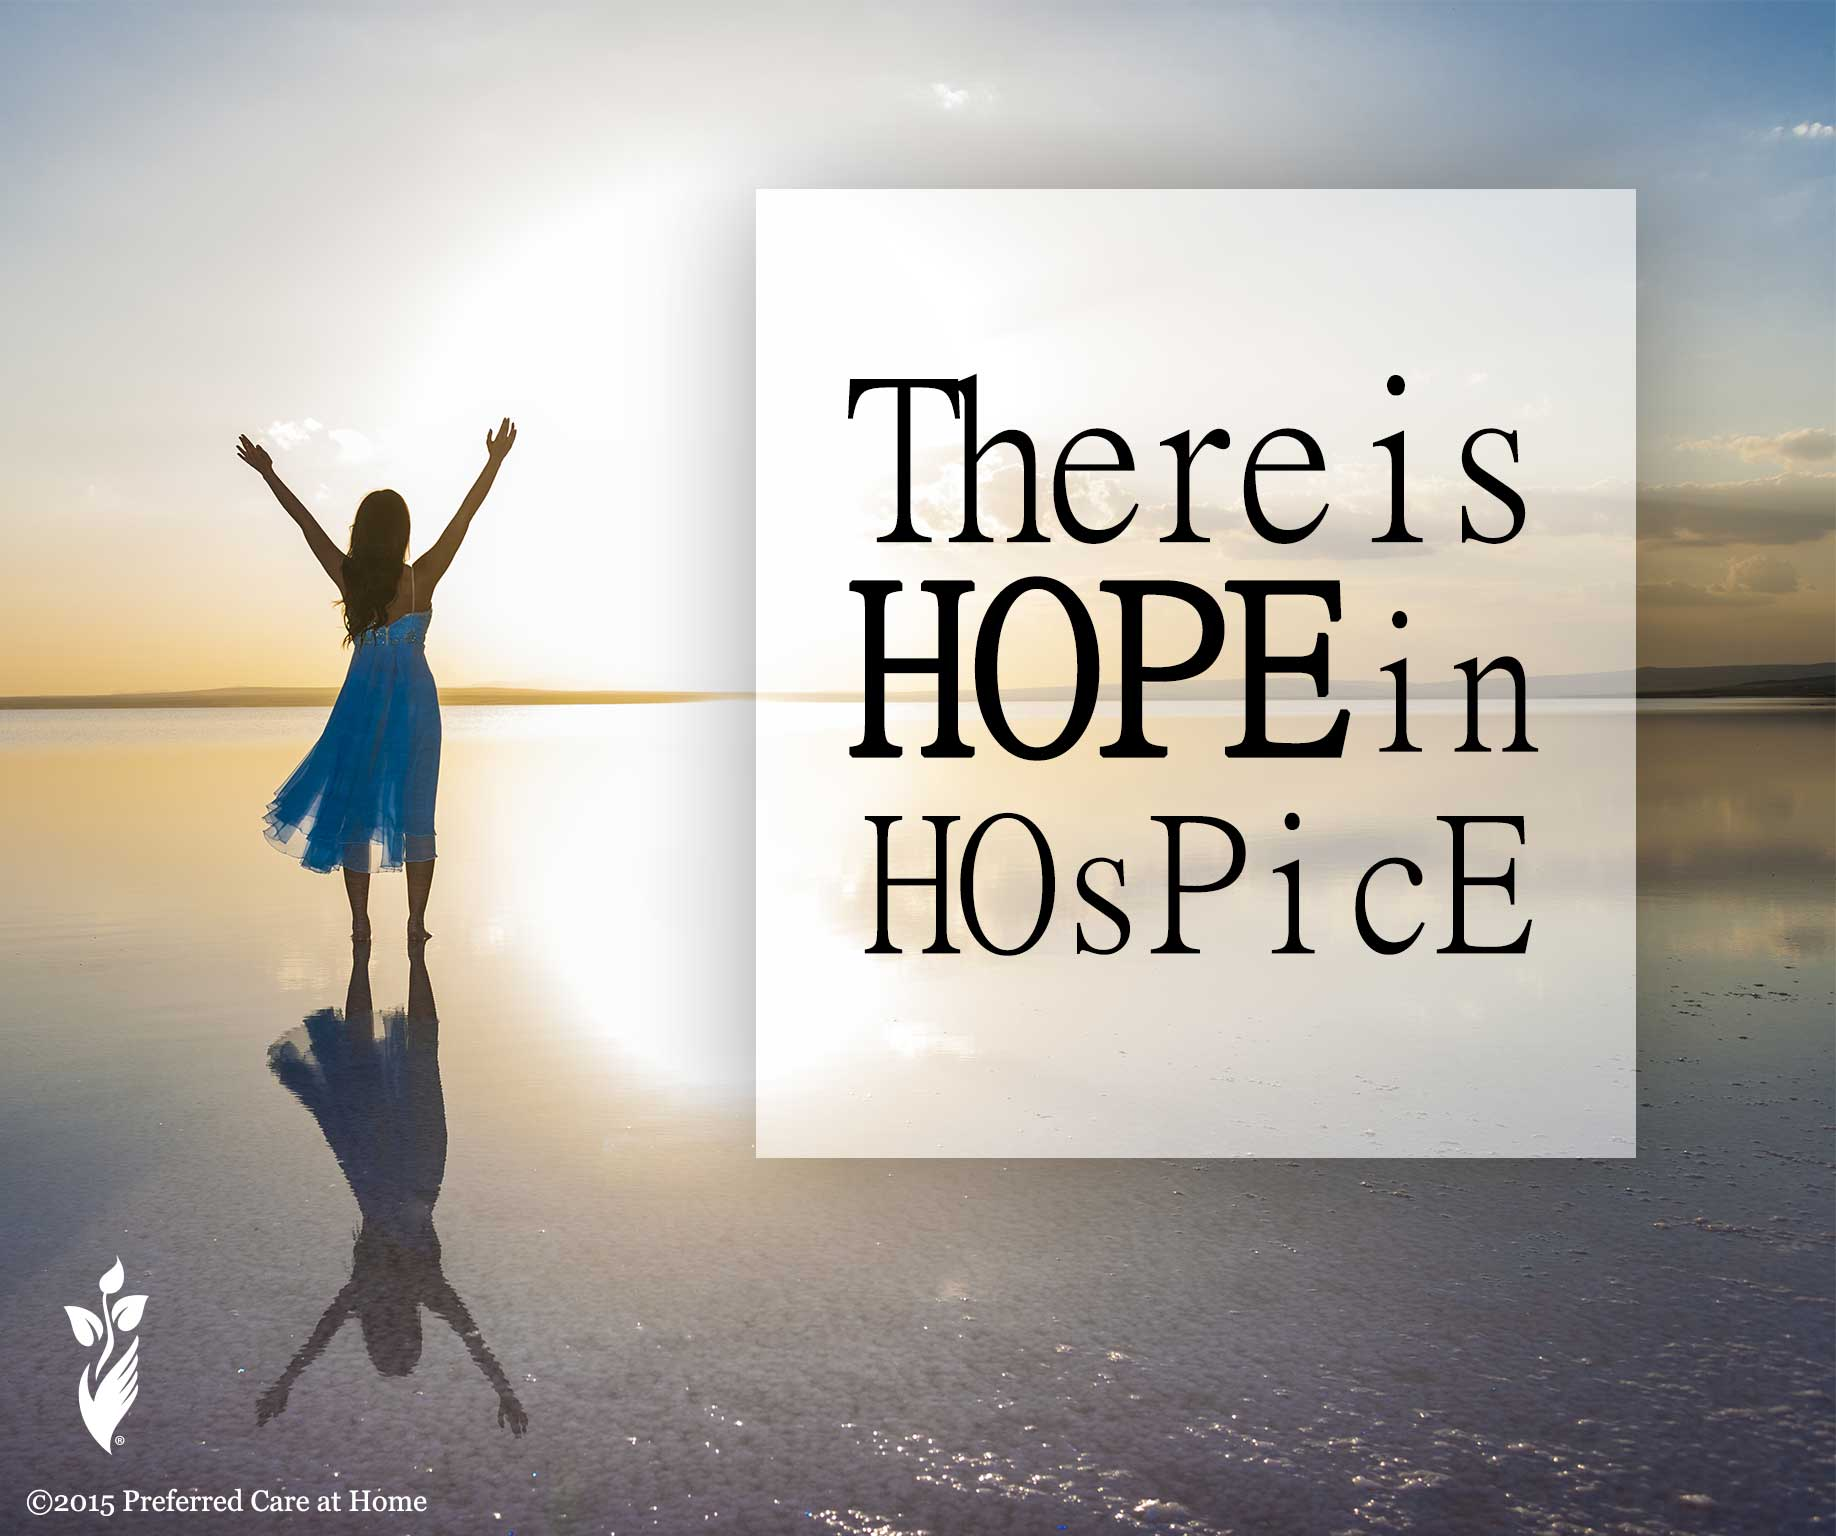 Hope in Hospice